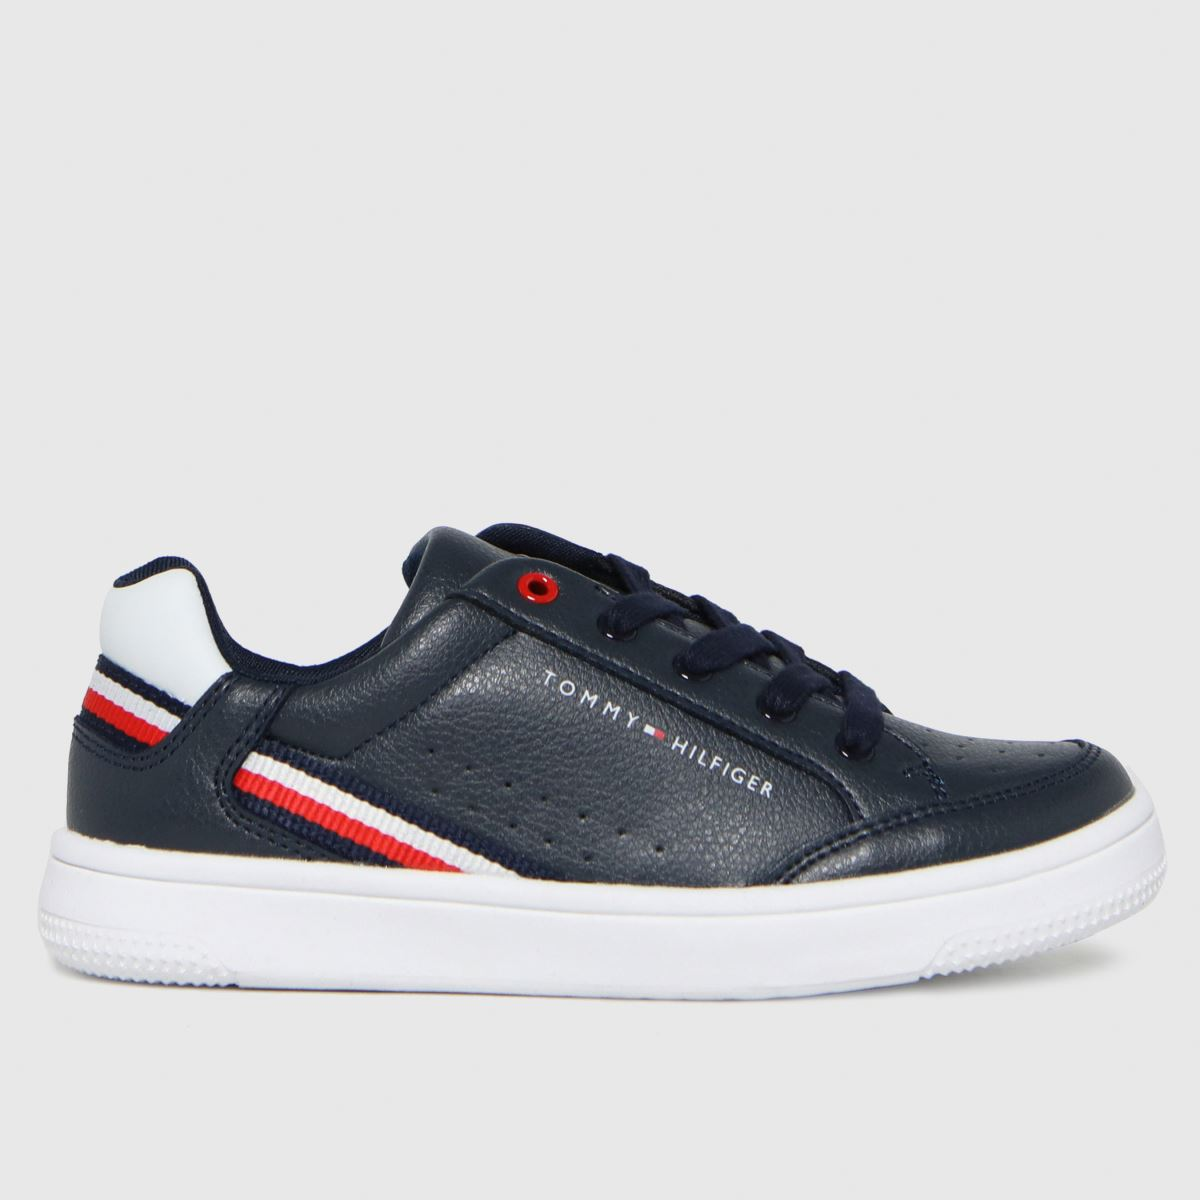 Tommy Hilfiger Navy & White Low Cut Lace-up Sneaker Trainers Jun